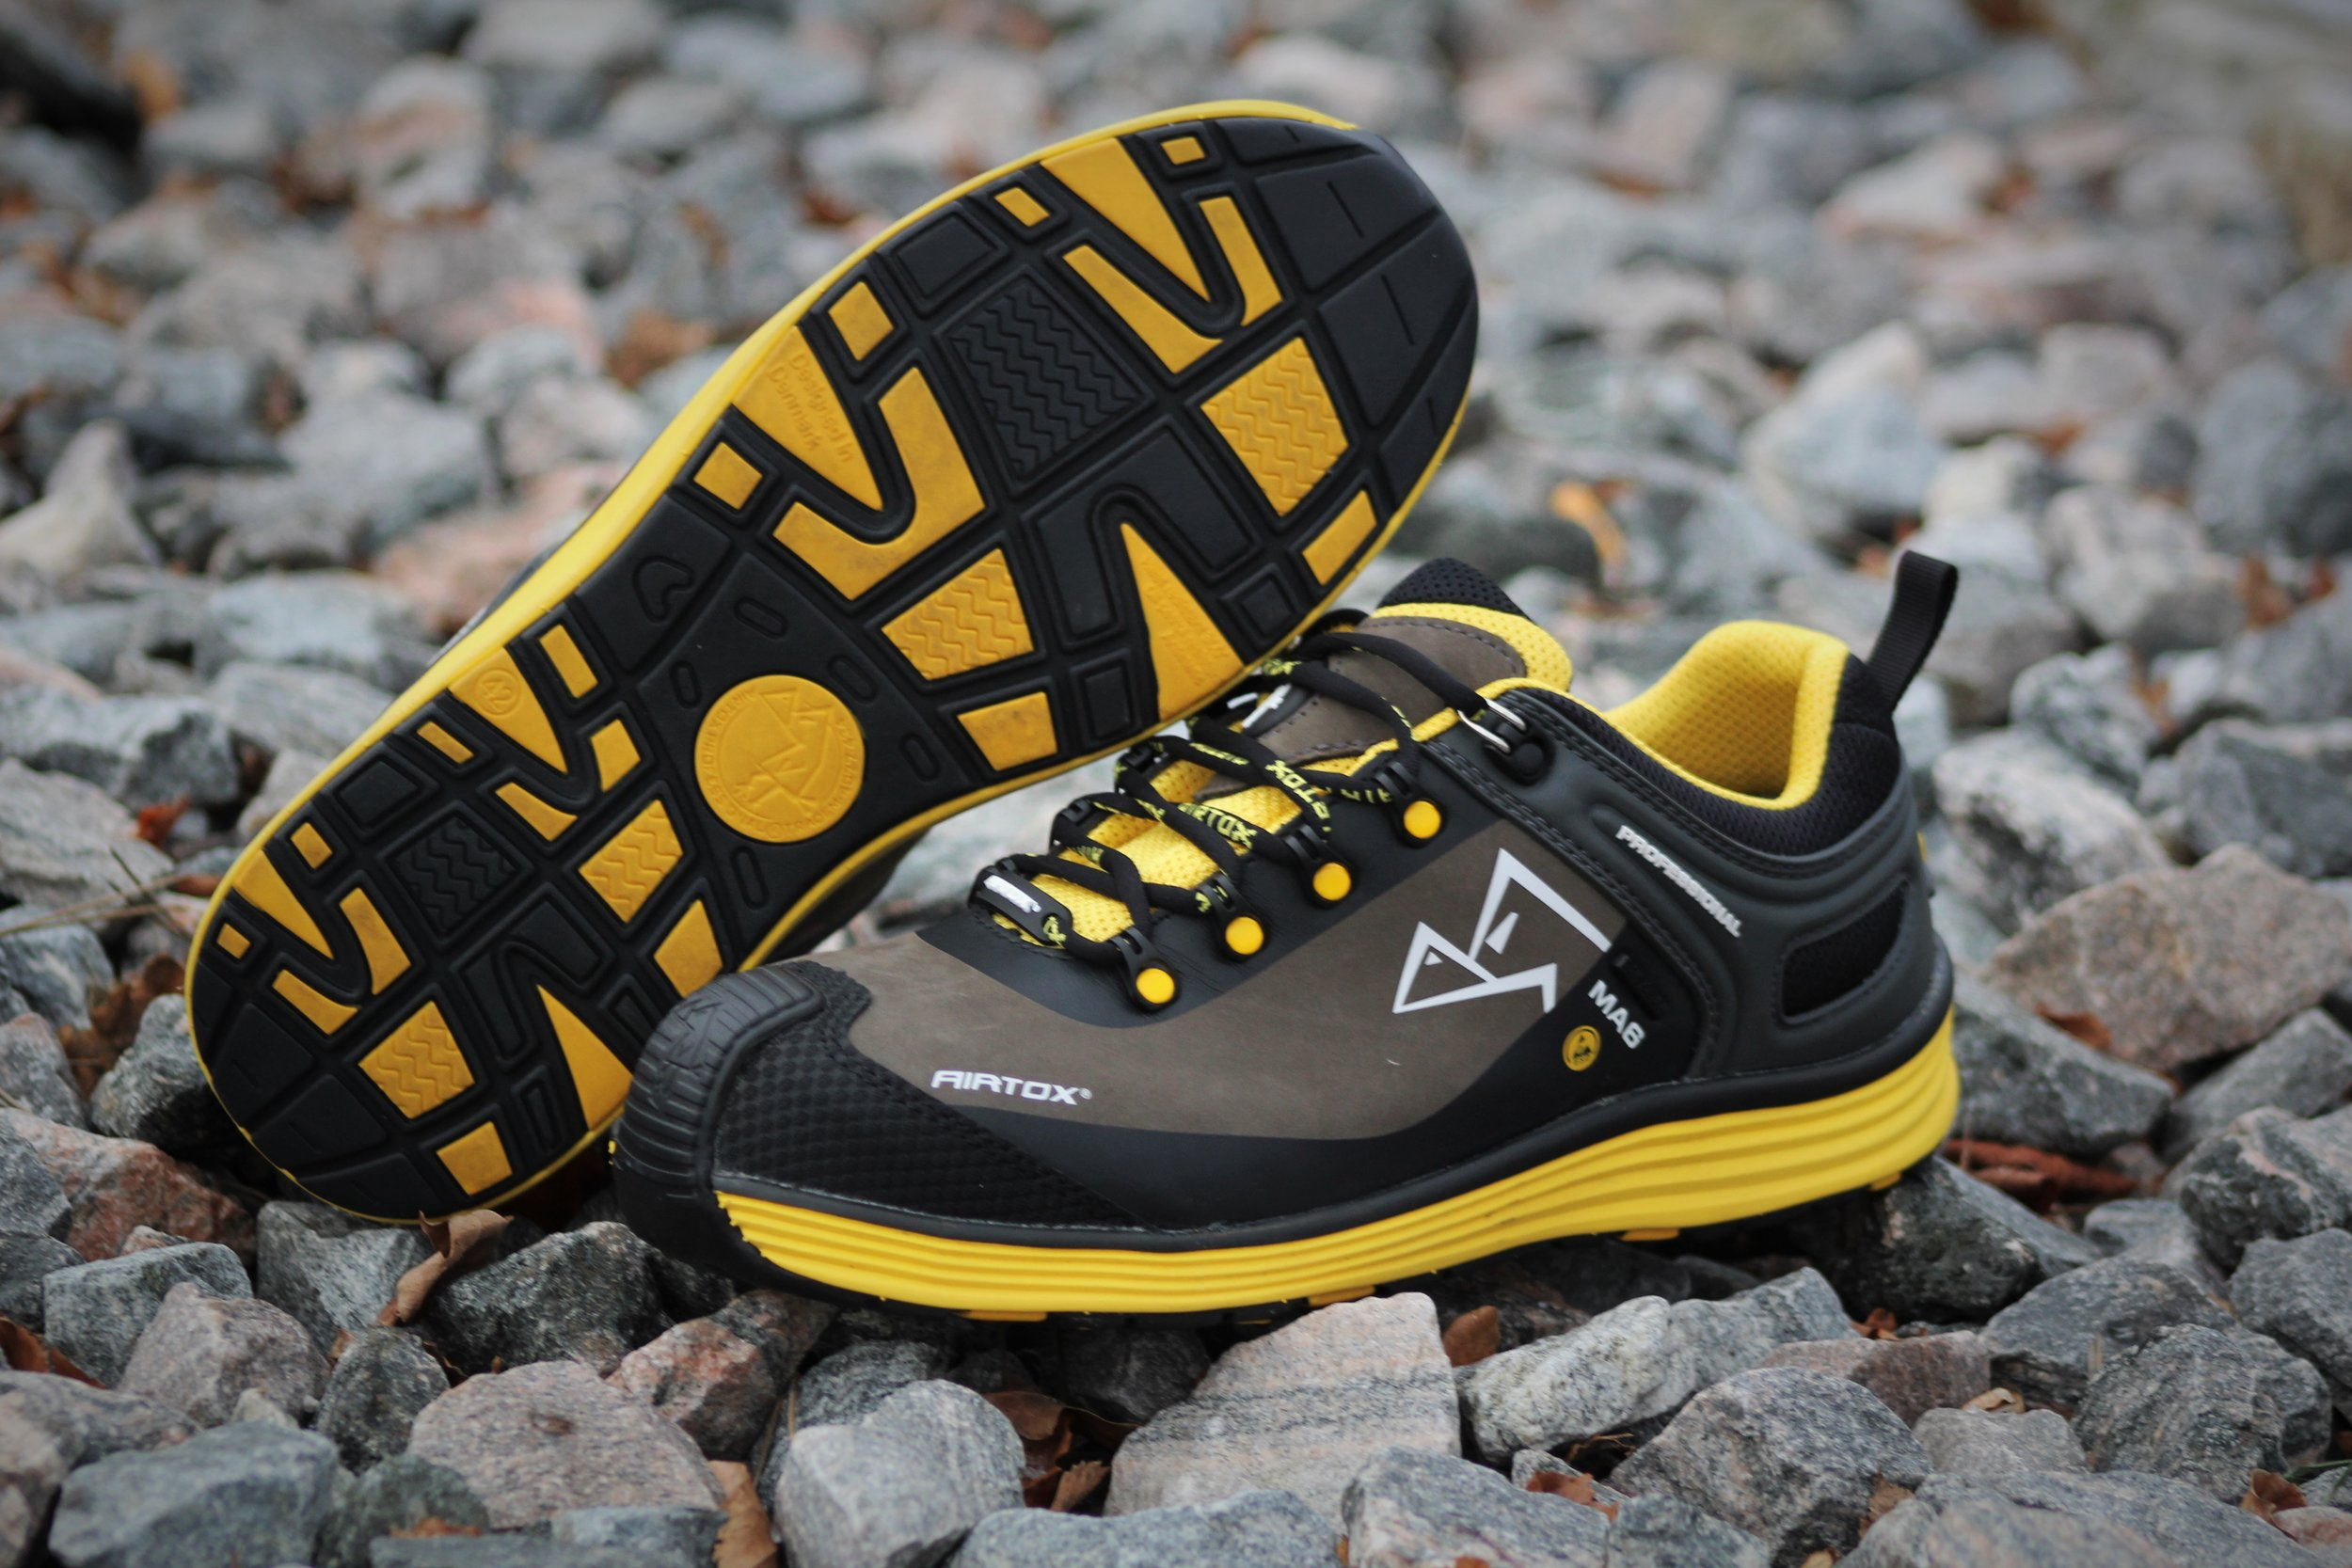 AIRTOX MA6 safety shoe.png